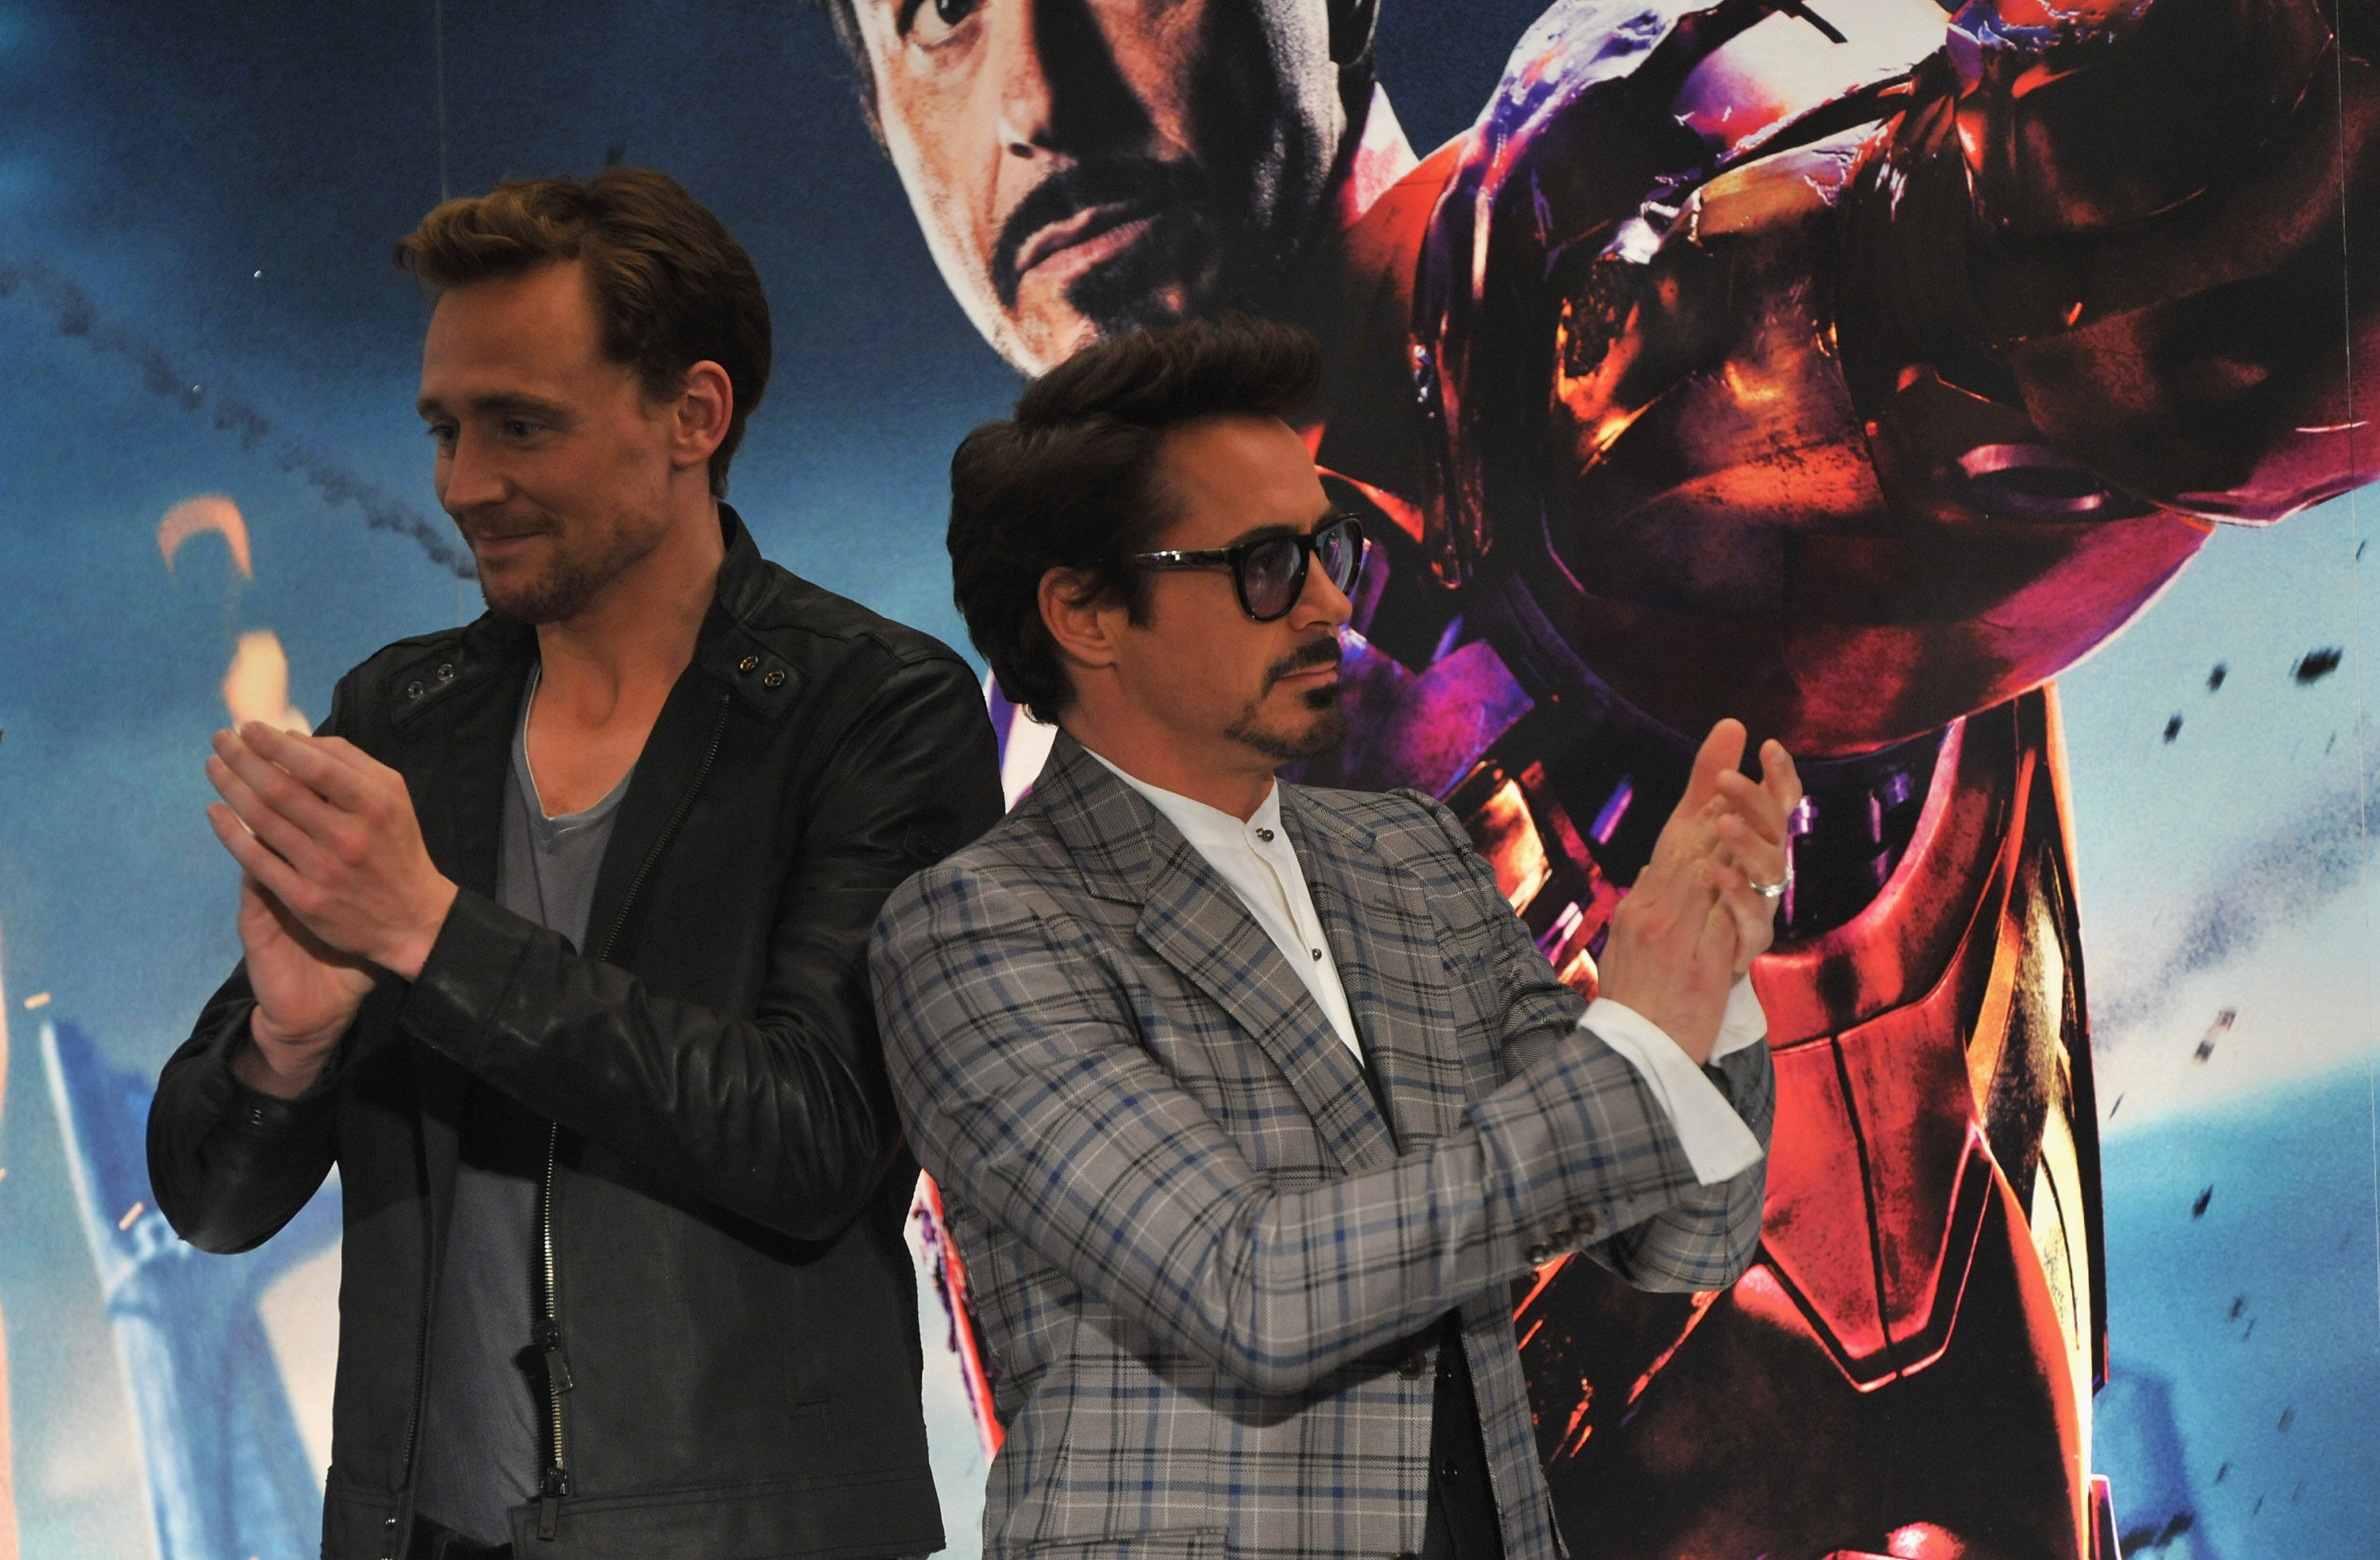 Robert Downey Jr welcomes Tom Hiddleston to Instagram by taking the mick out of THAT Taylor Swift T-shirt